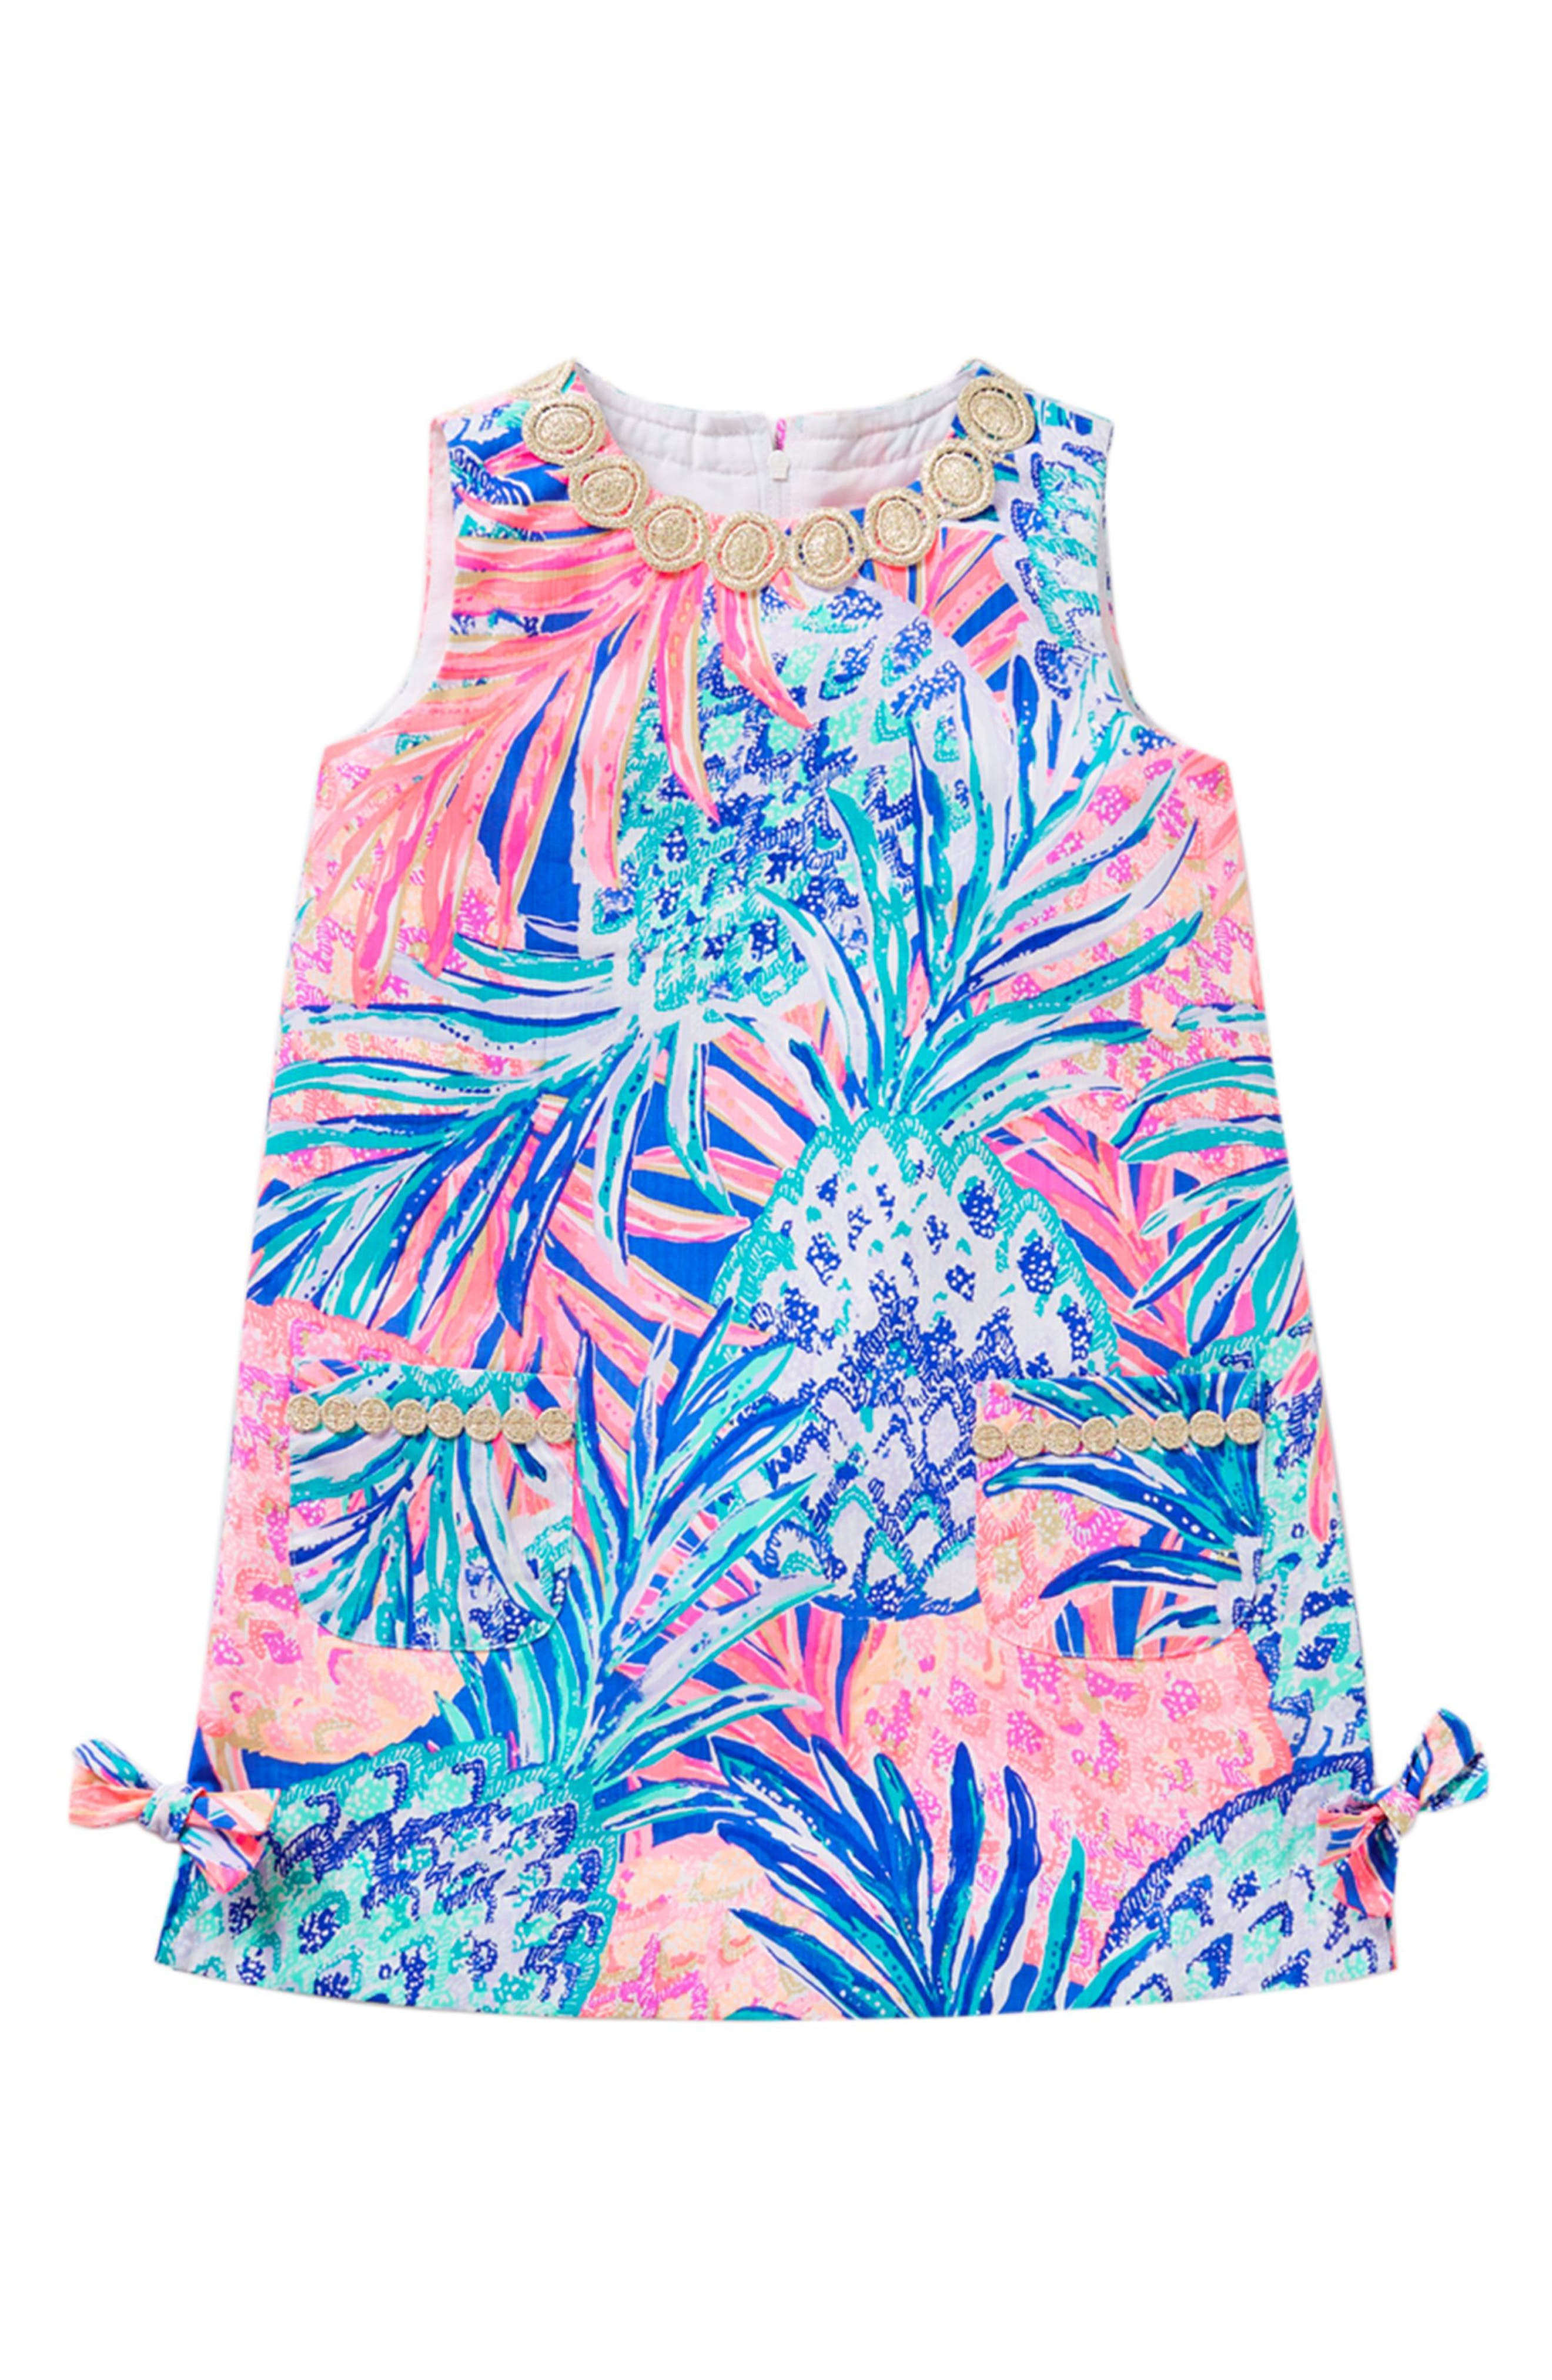 Little Lilly Shift Dress,                             Main thumbnail 1, color,                             400